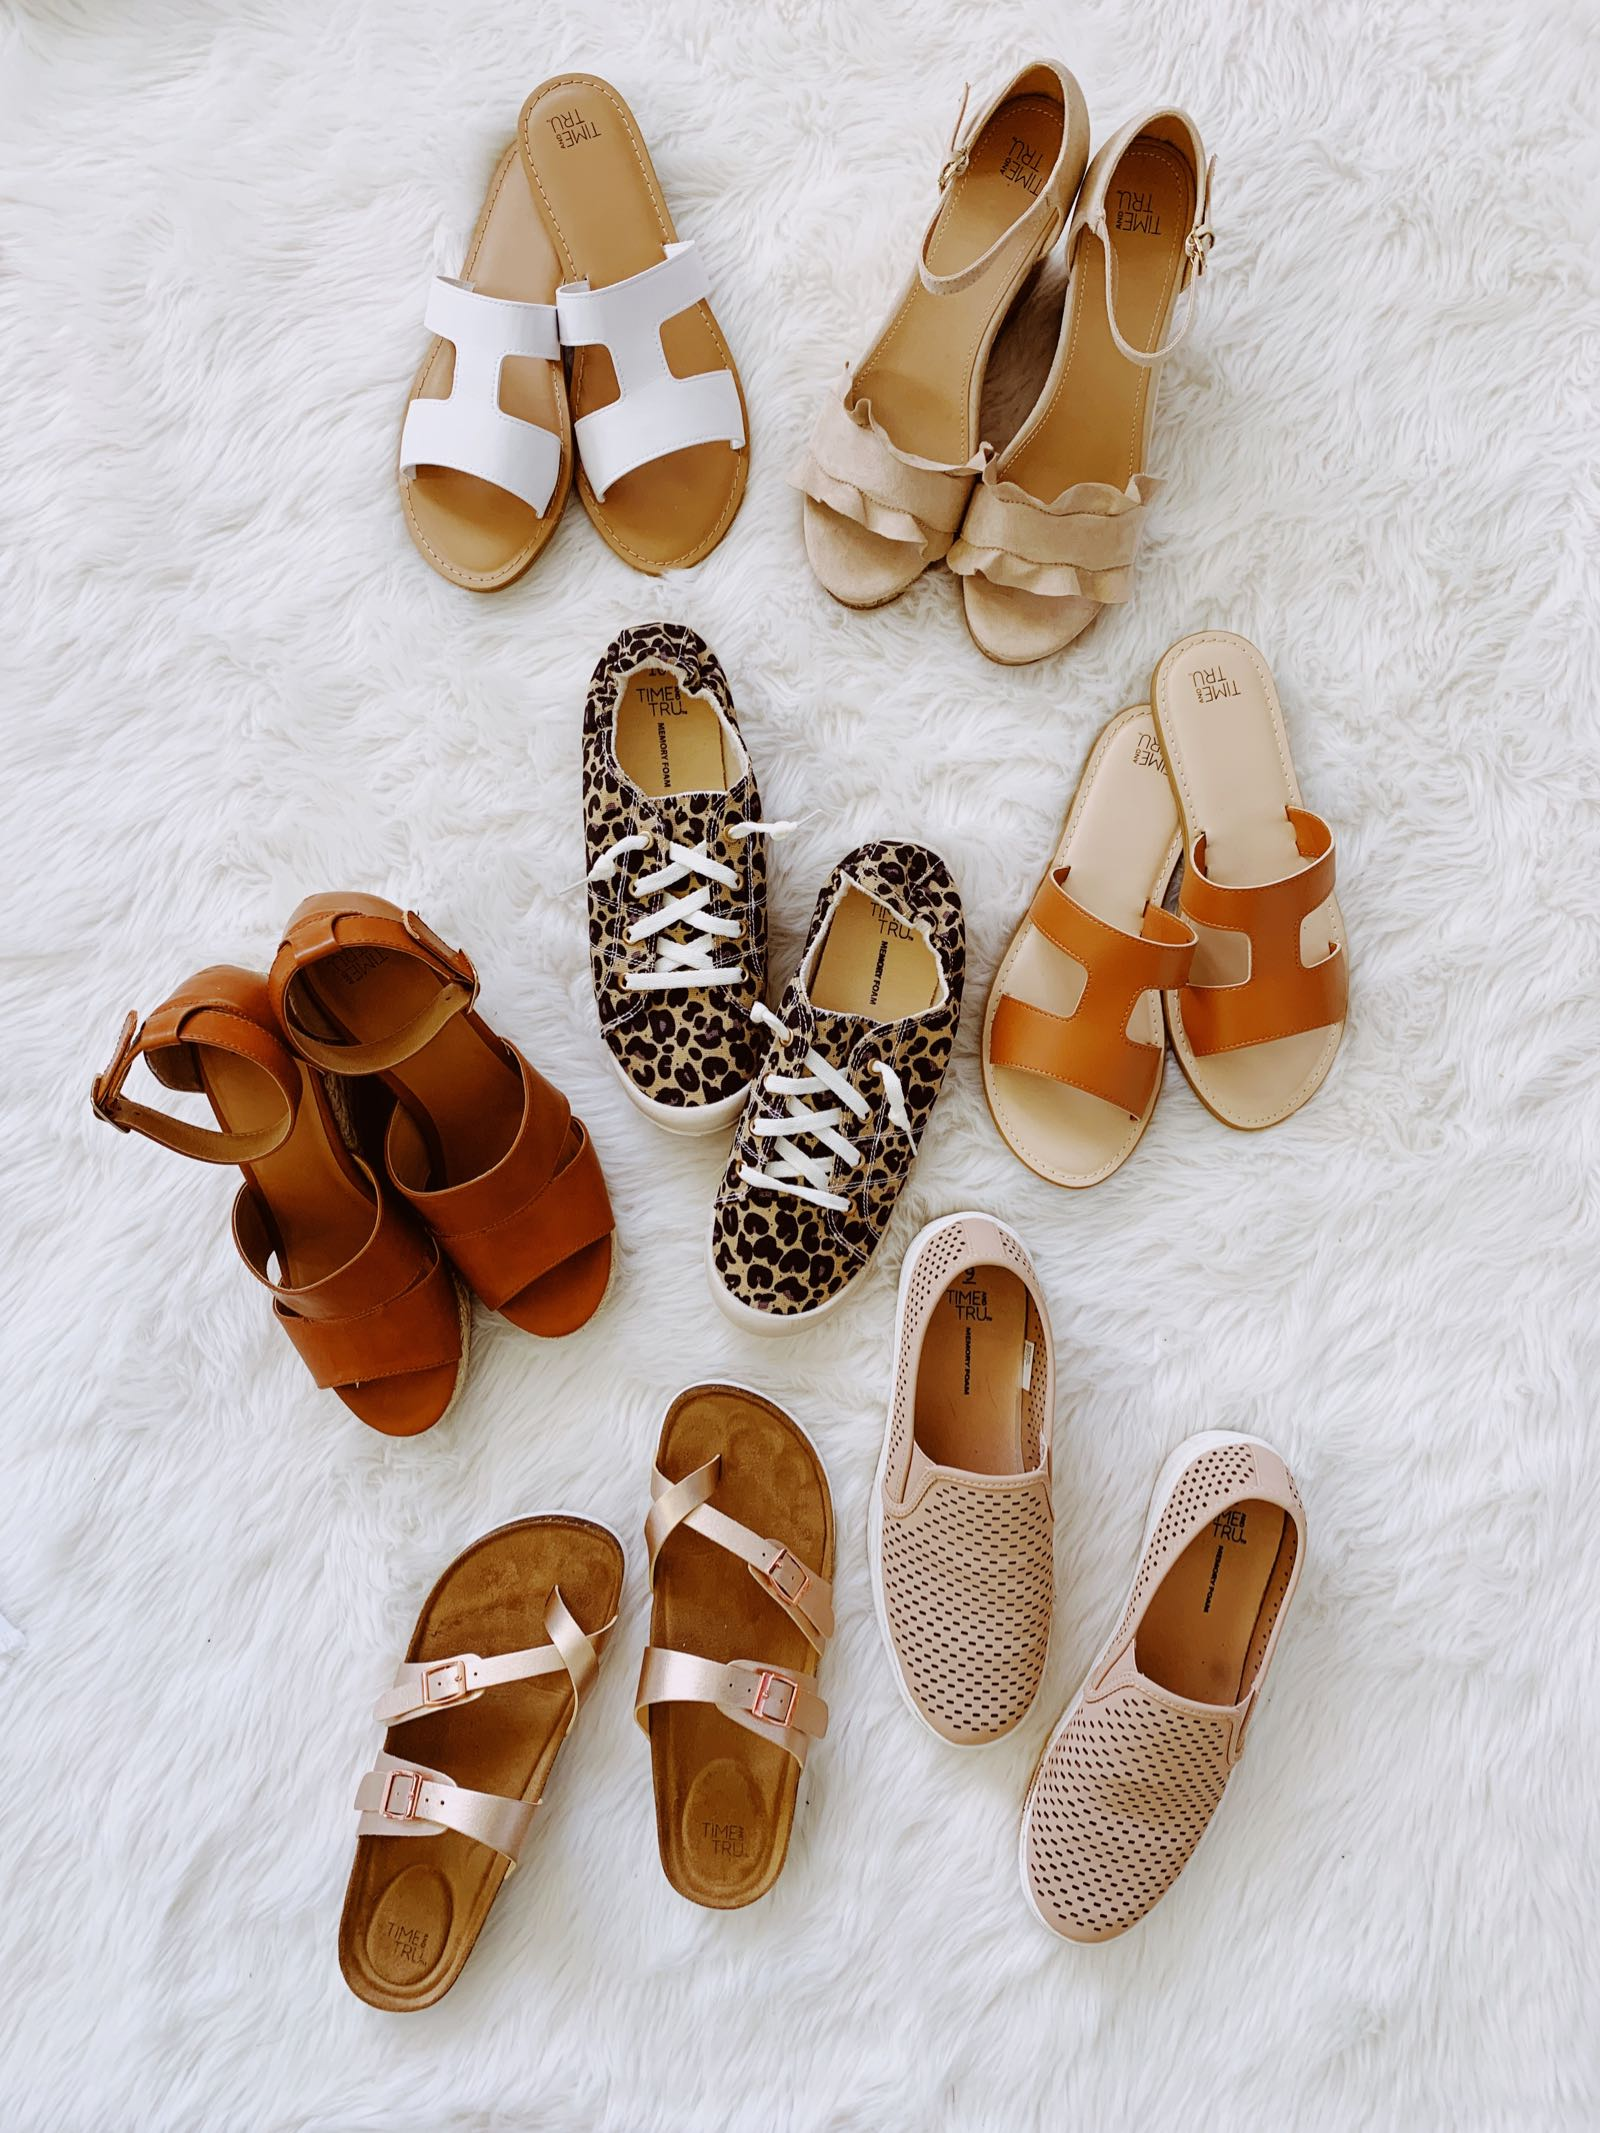 Spring and summer shoe capsule wardrobe, each pair is under $20 at Walmart!